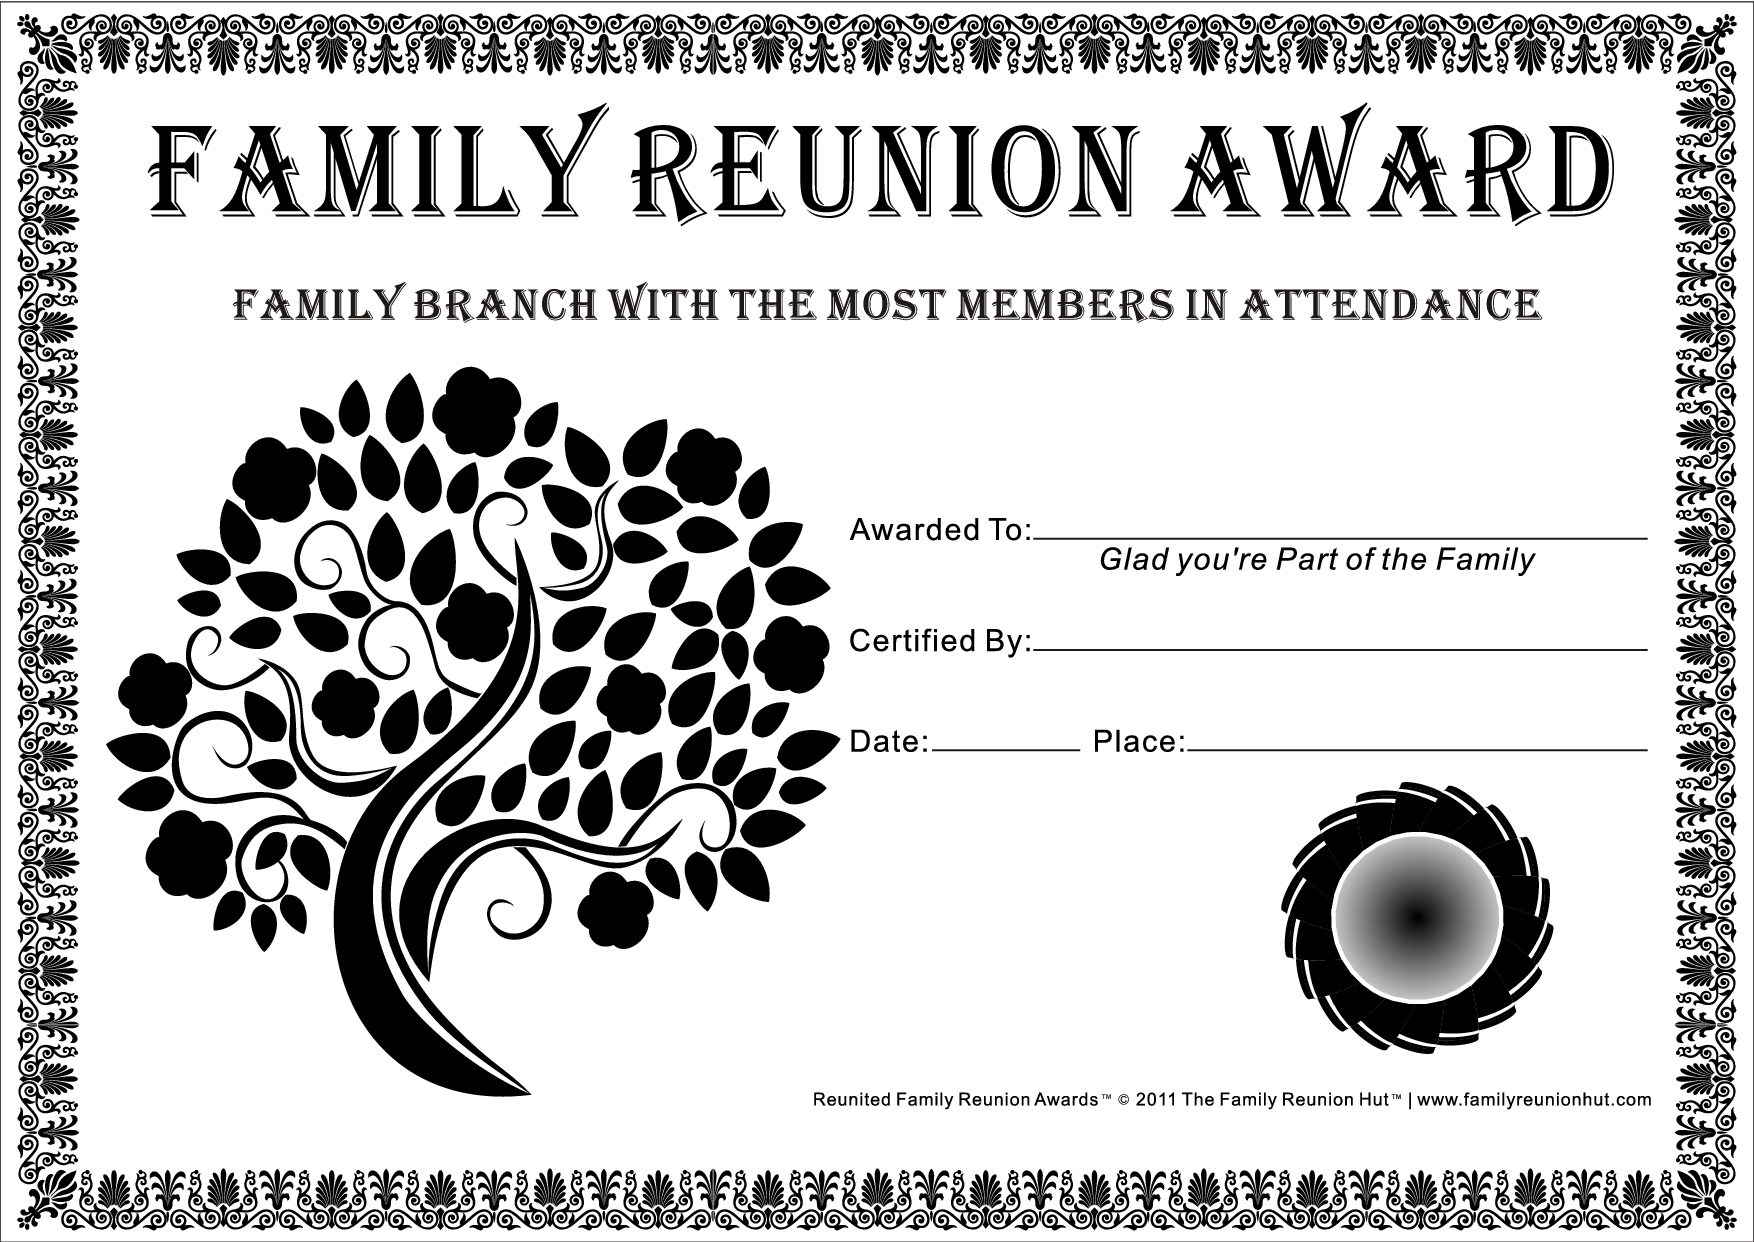 Family Reunion Certificates - Tree In Bloom 2 Is A Free Family - Free Printable Family Reunion Awards